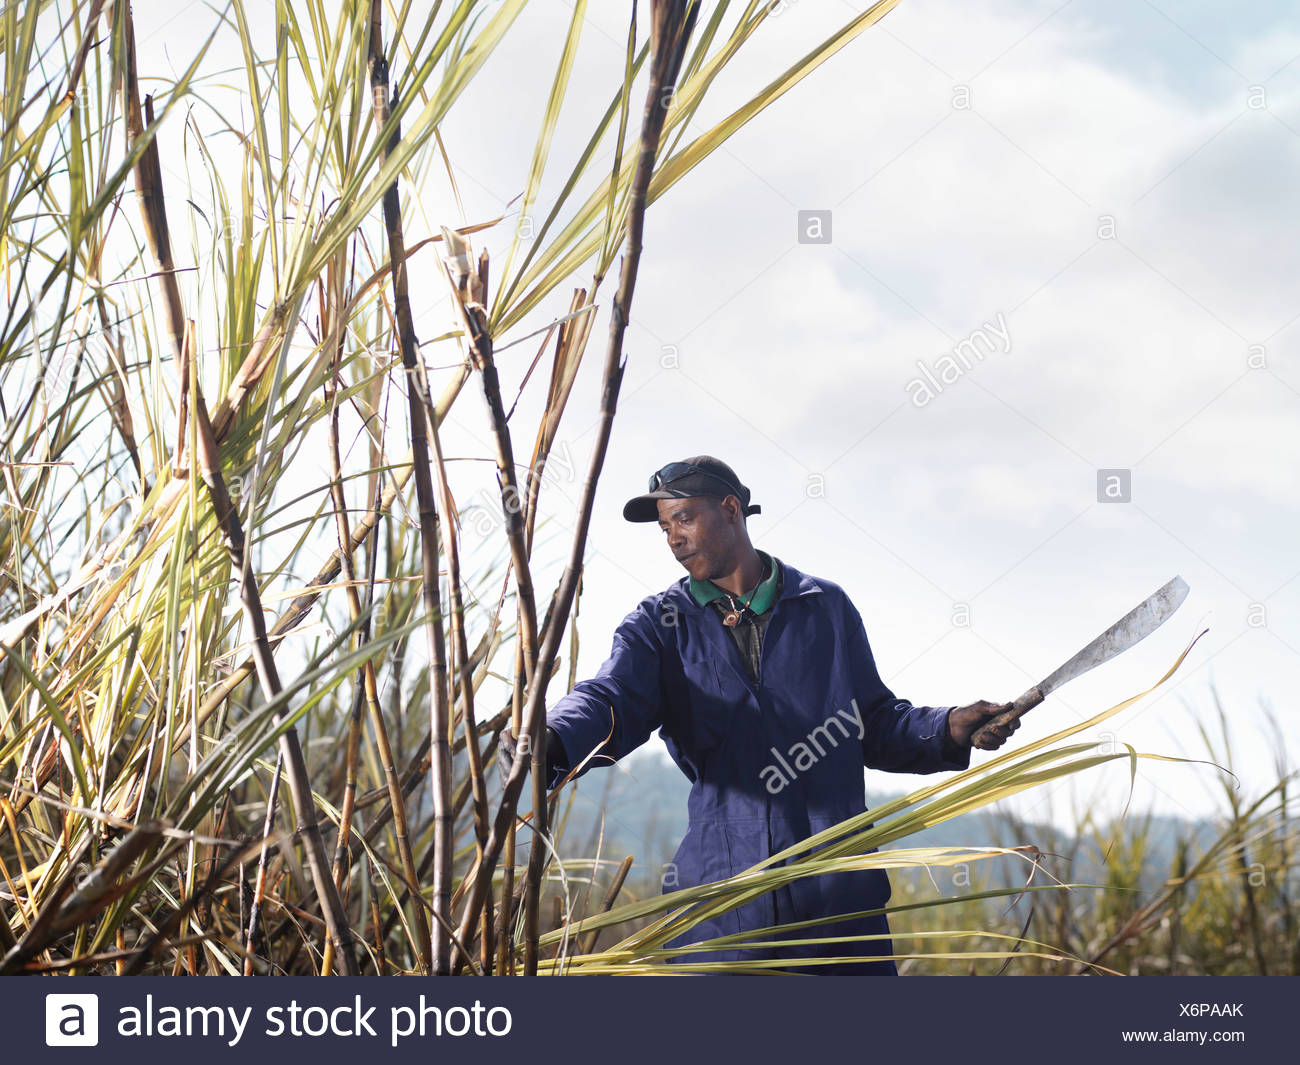 Worker Harvesting Sugar Cane - Stock Image